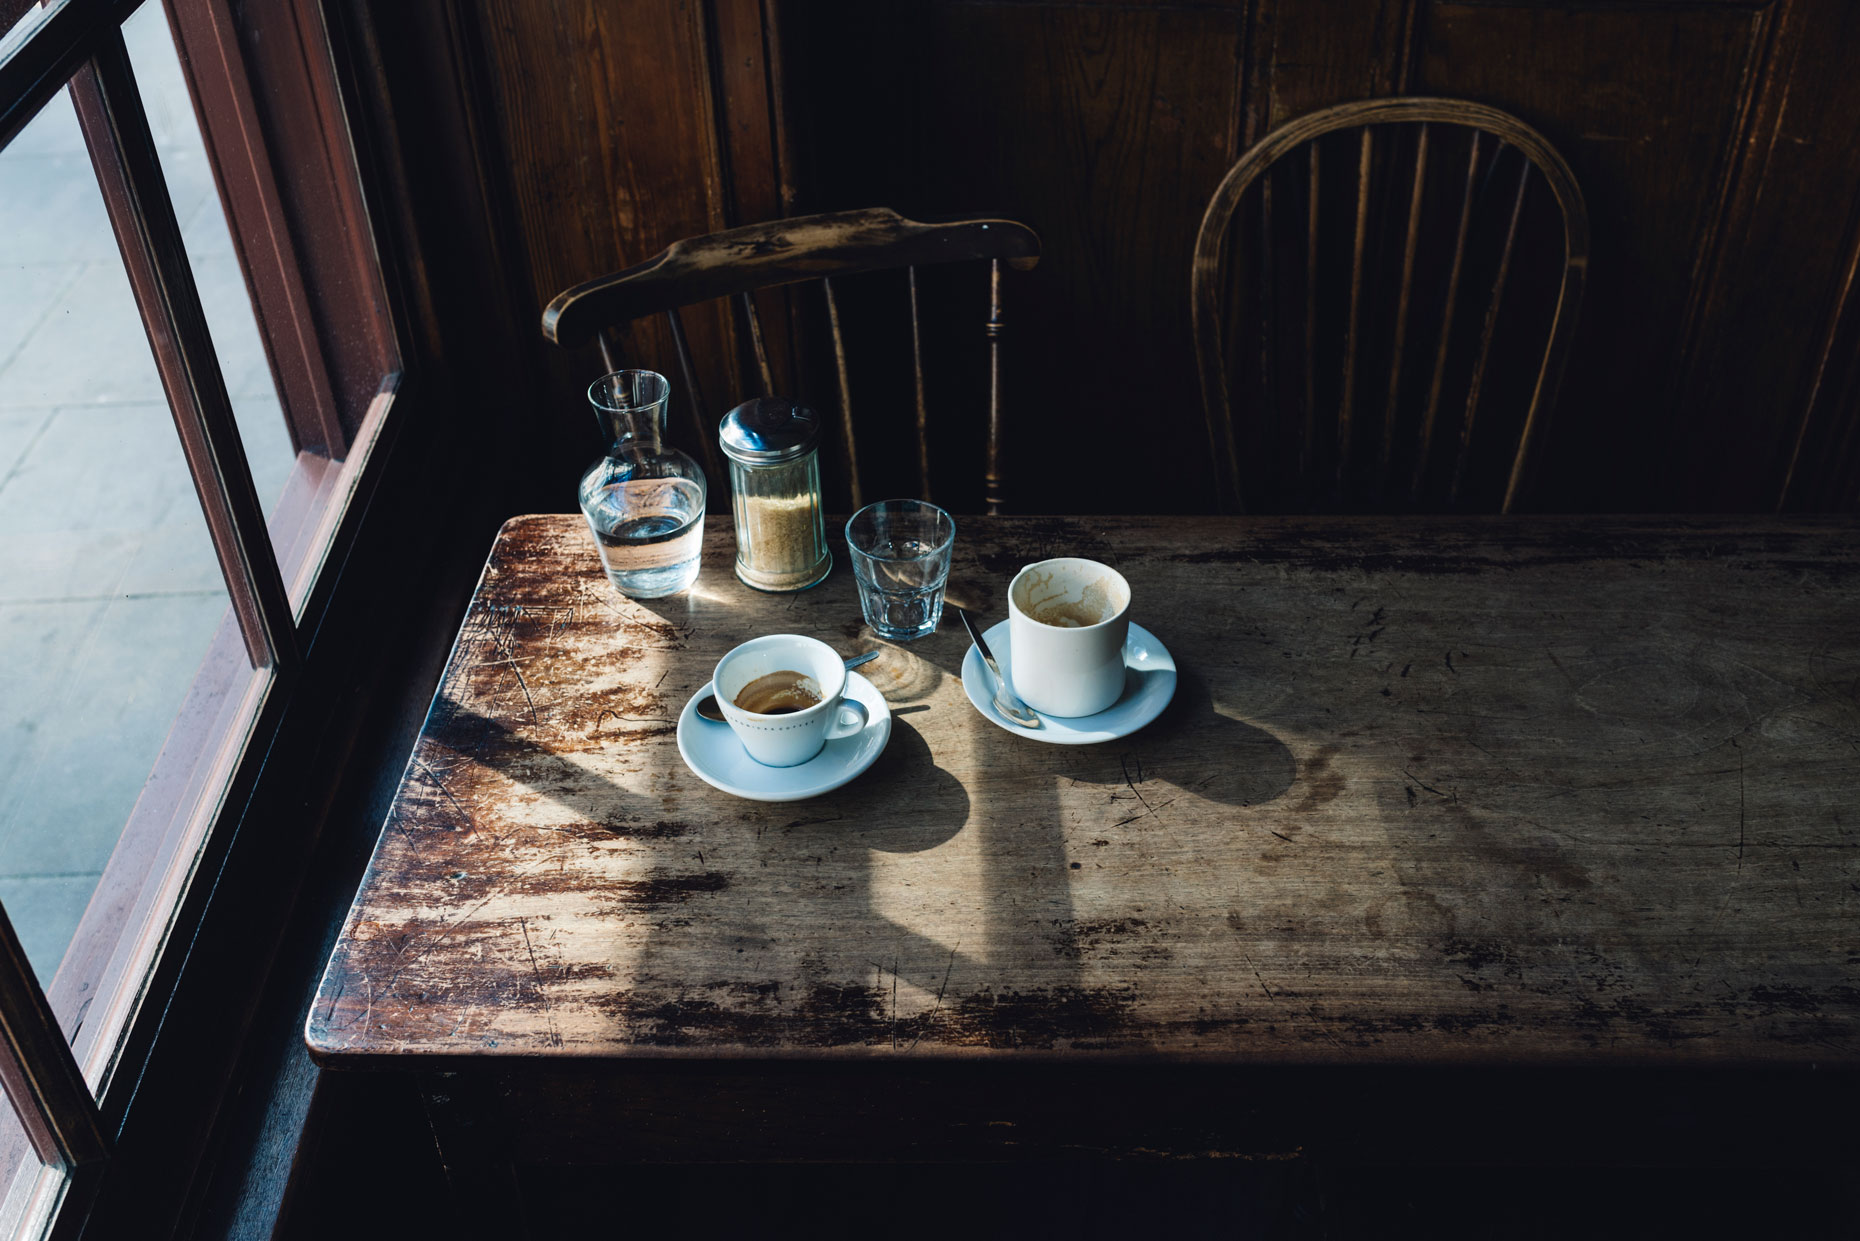 Empty-coffee-cups-on-shabby-wooden-table-in-cafe